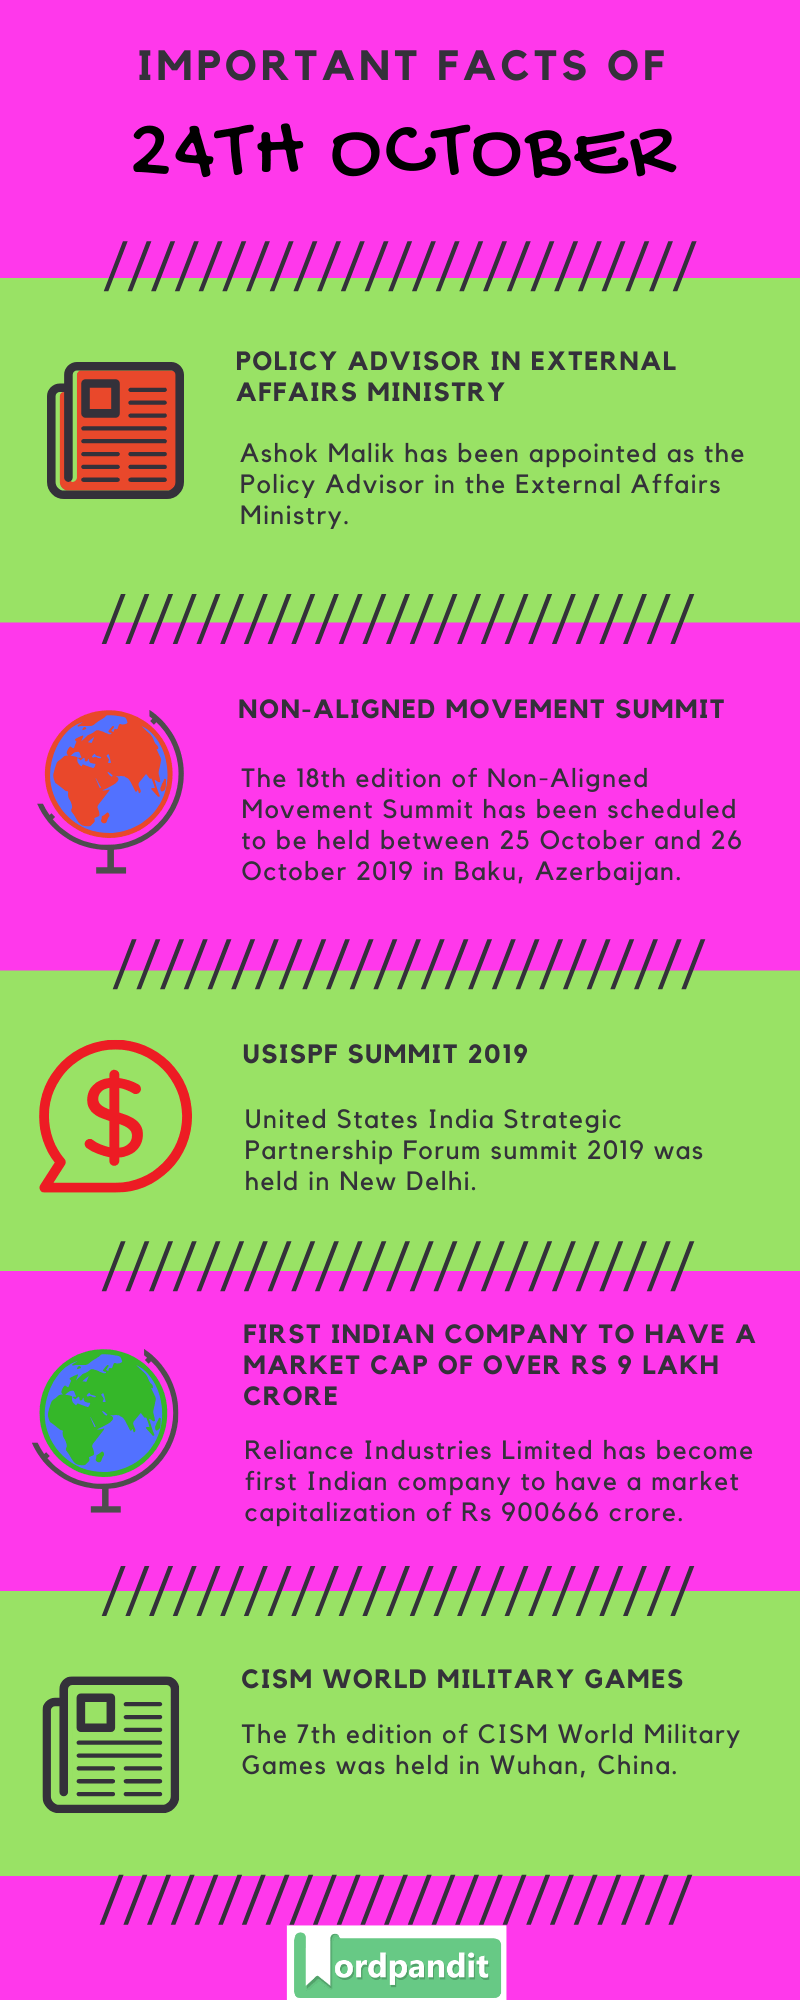 Daily Current Affairs 24 October 2019 Current Affairs Quiz 24 October 2019 Current Affairs Infographic